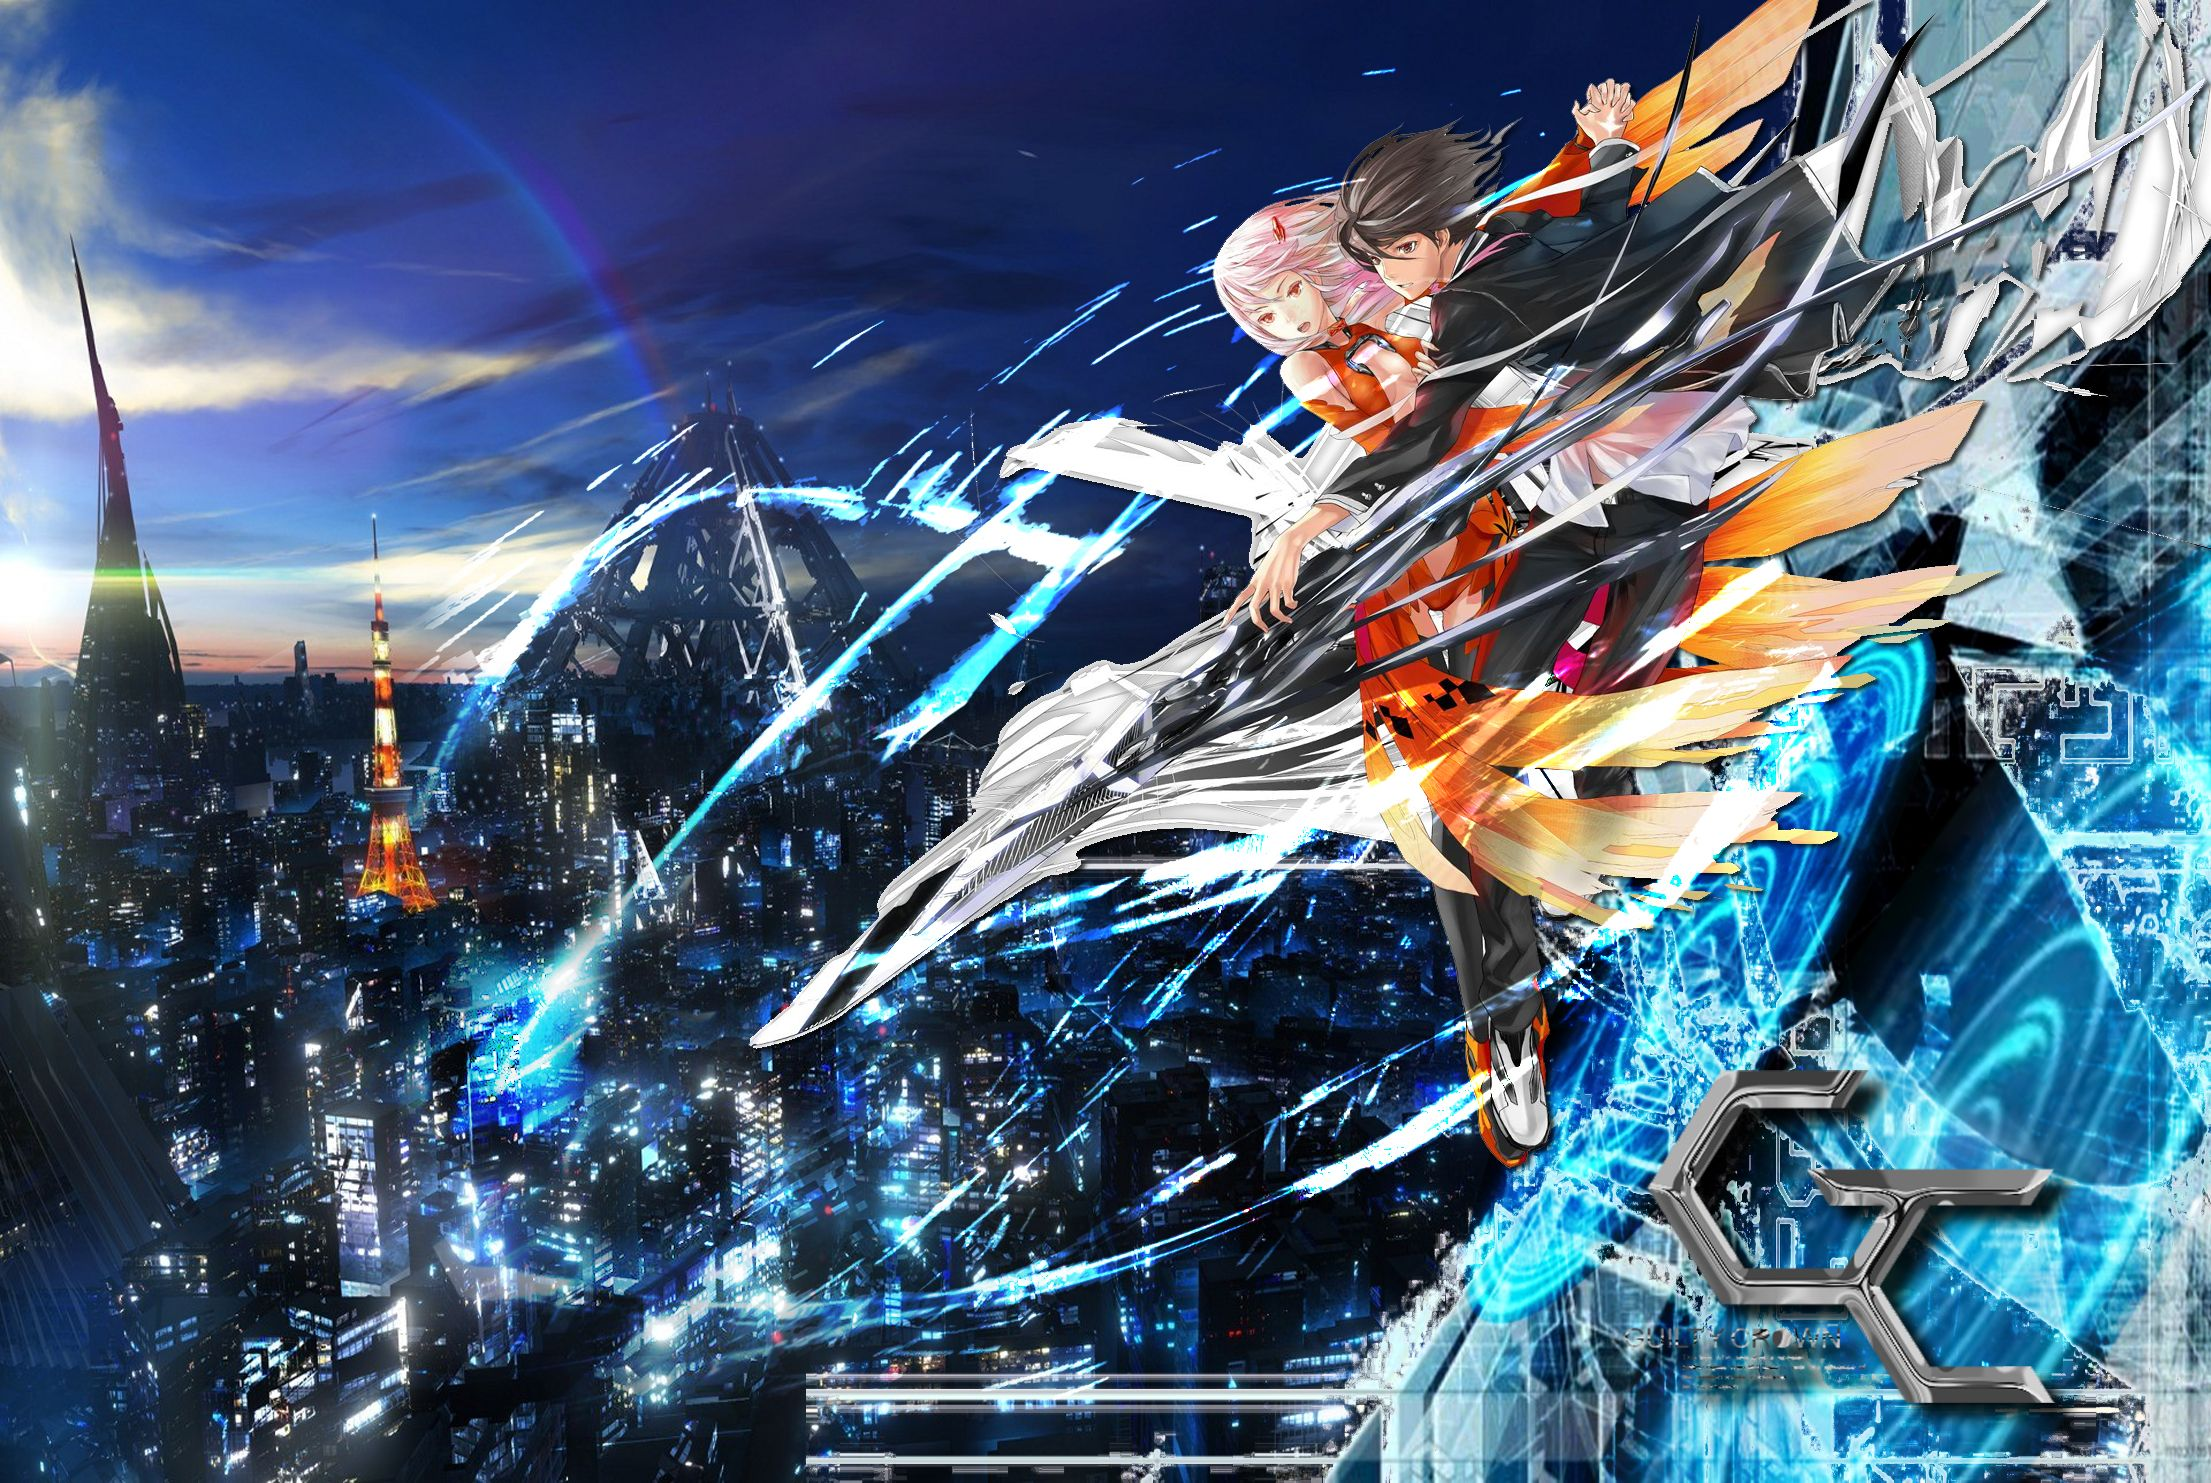 Anime Guilty Crown Really Good Anime In My Opinion Genre Action Drama Sci Fi Romance Super P Guilty Crown Wallpapers Hd Anime Wallpapers Anime Wallpaper